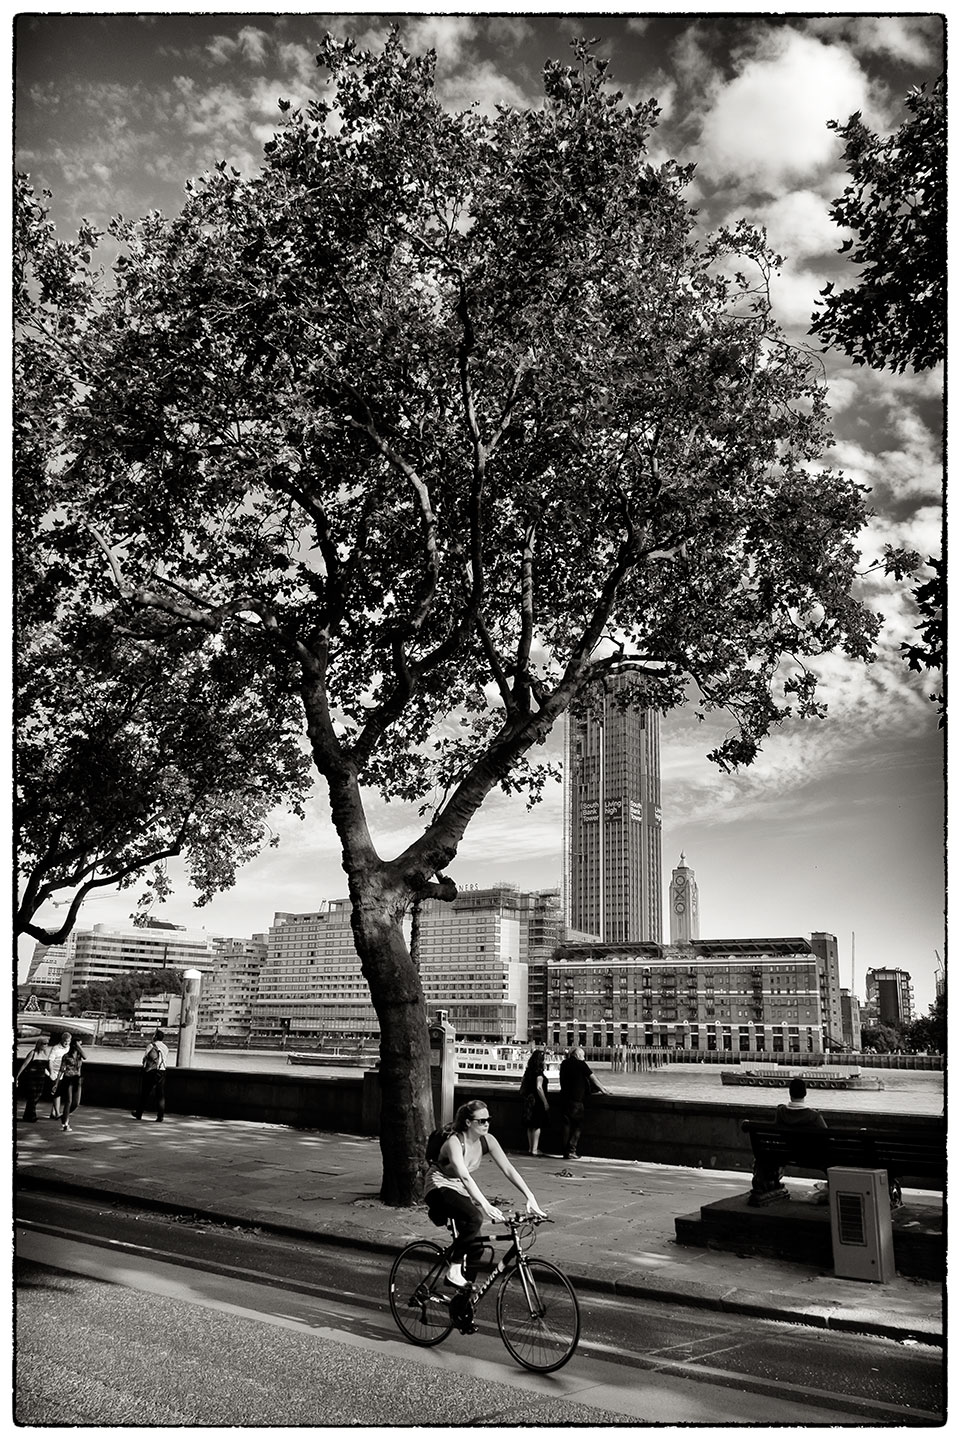 Sunny day in London. Embankment.